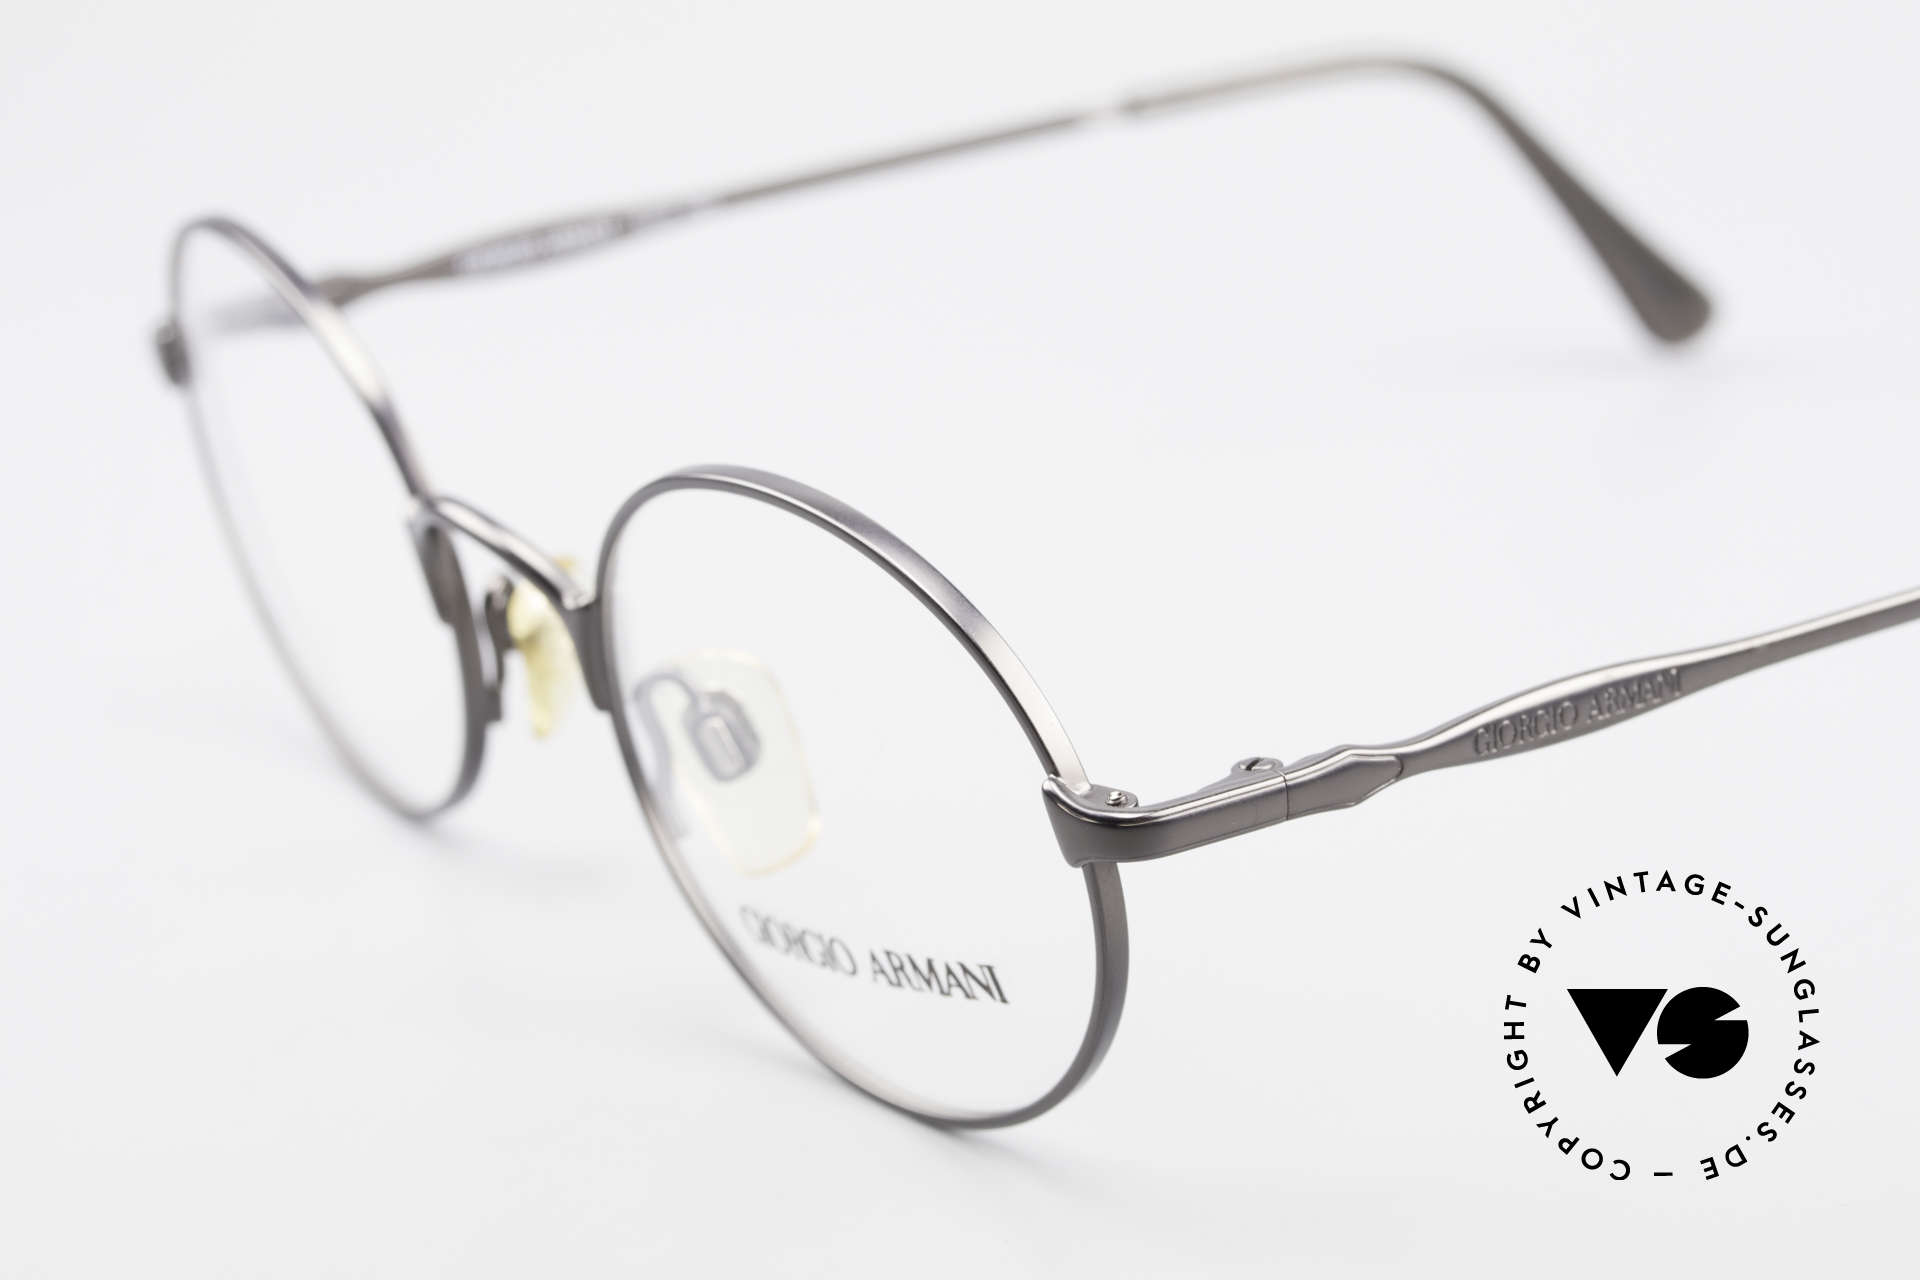 Giorgio Armani 243 Small Round Oval Glasses 90s, never worn (like all our 1990's designer classics), Made for Men and Women